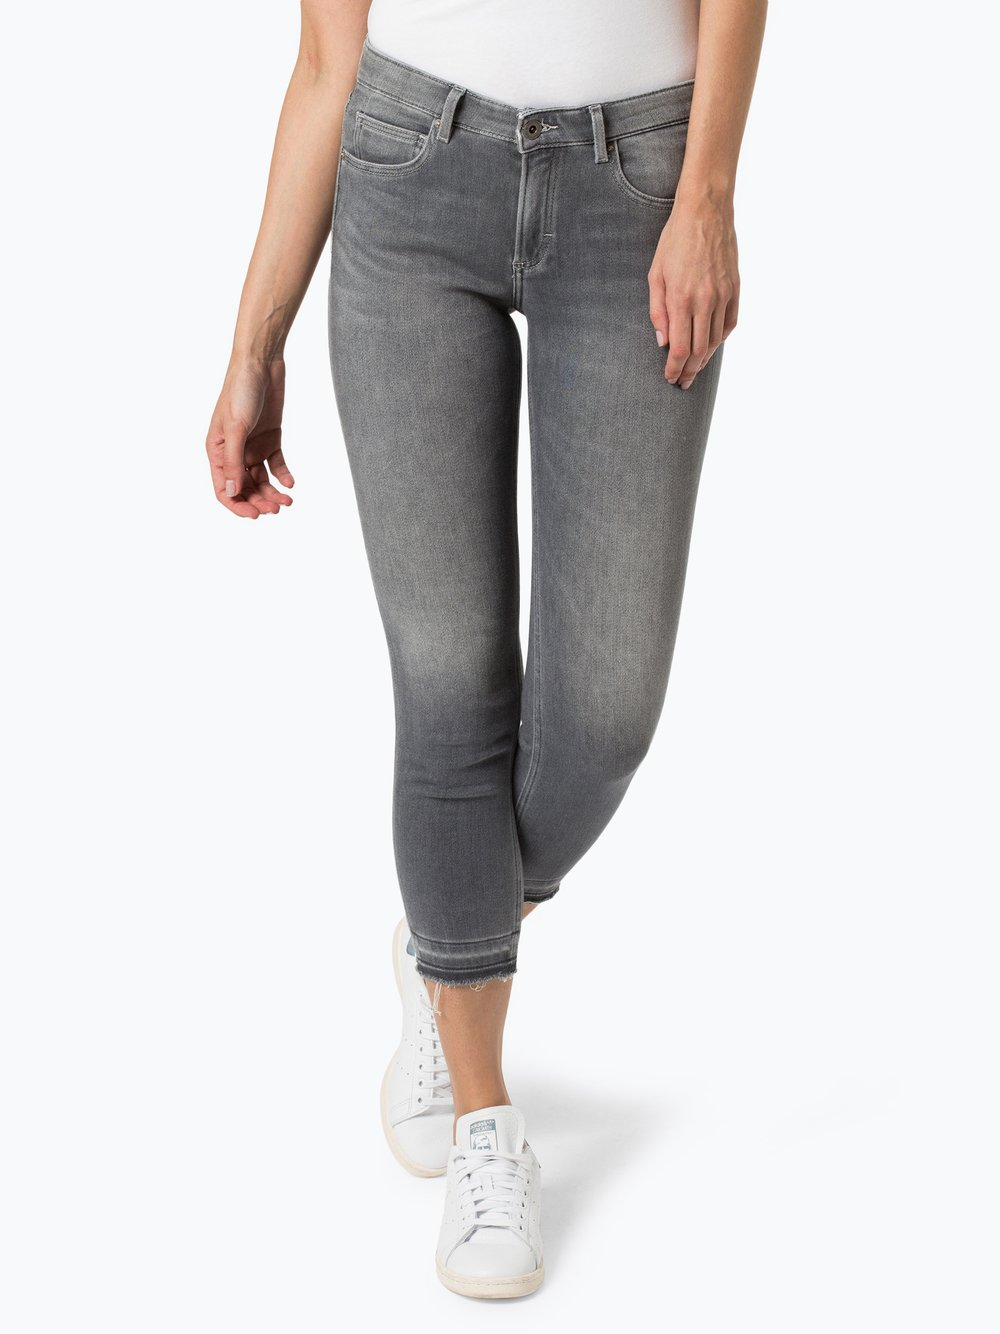 reputable site 288e8 65949 Marc O'Polo Damen Jeans - Lulea Cropped online kaufen ...